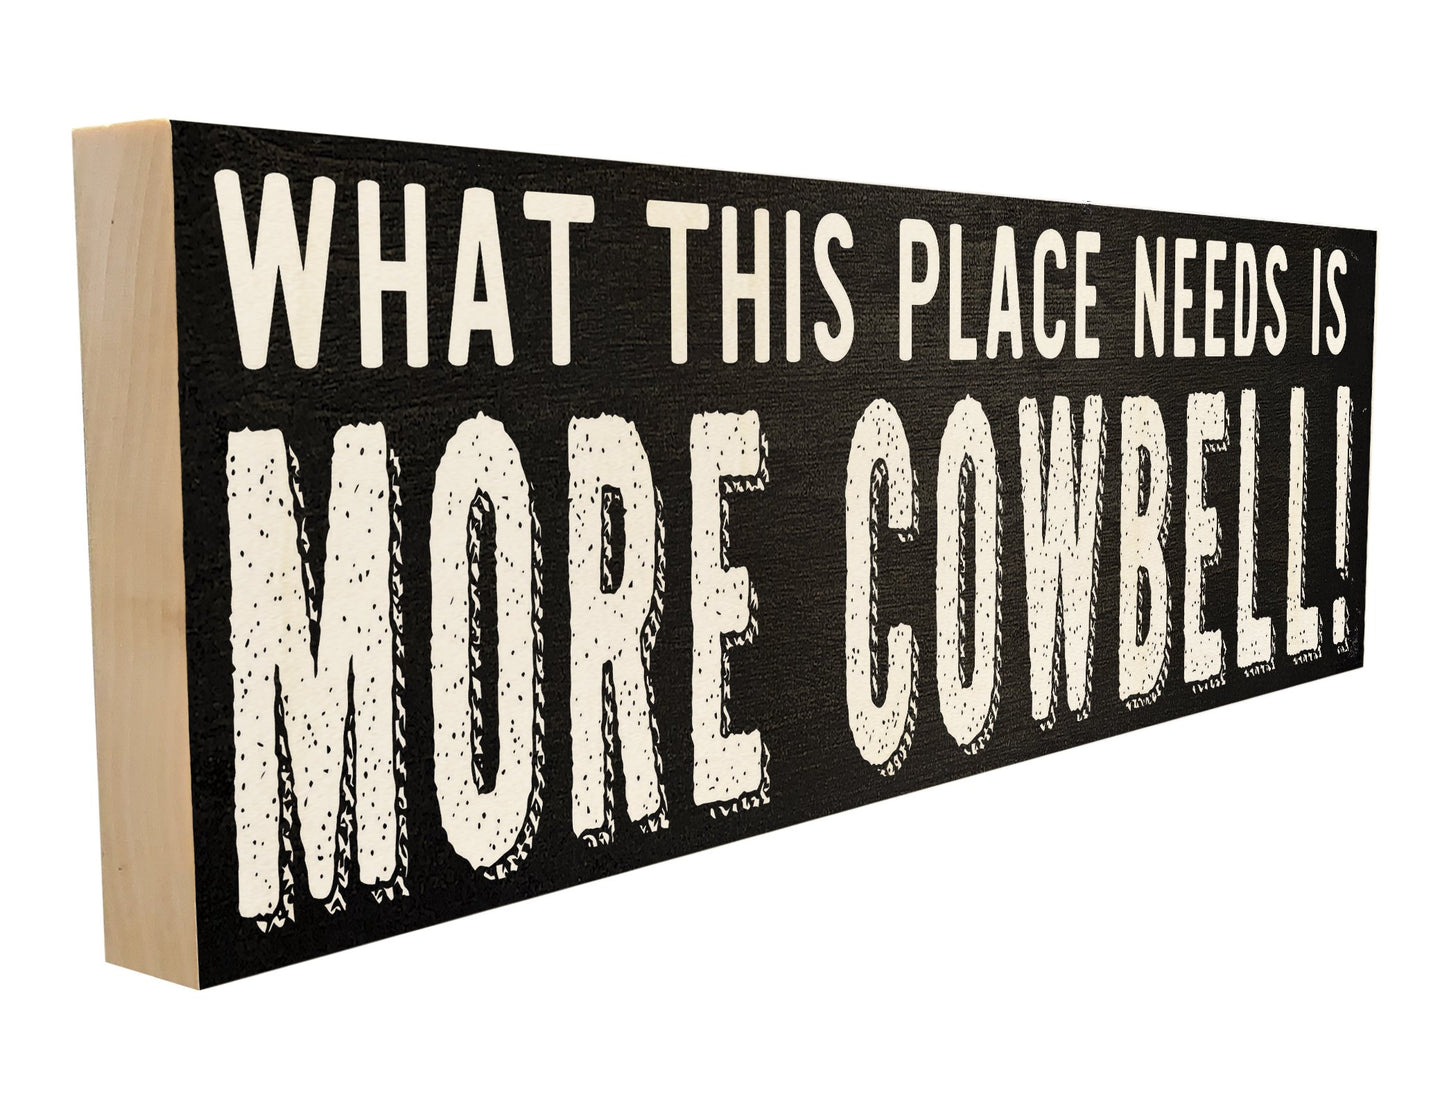 What This Place Needs is More Cowbell!